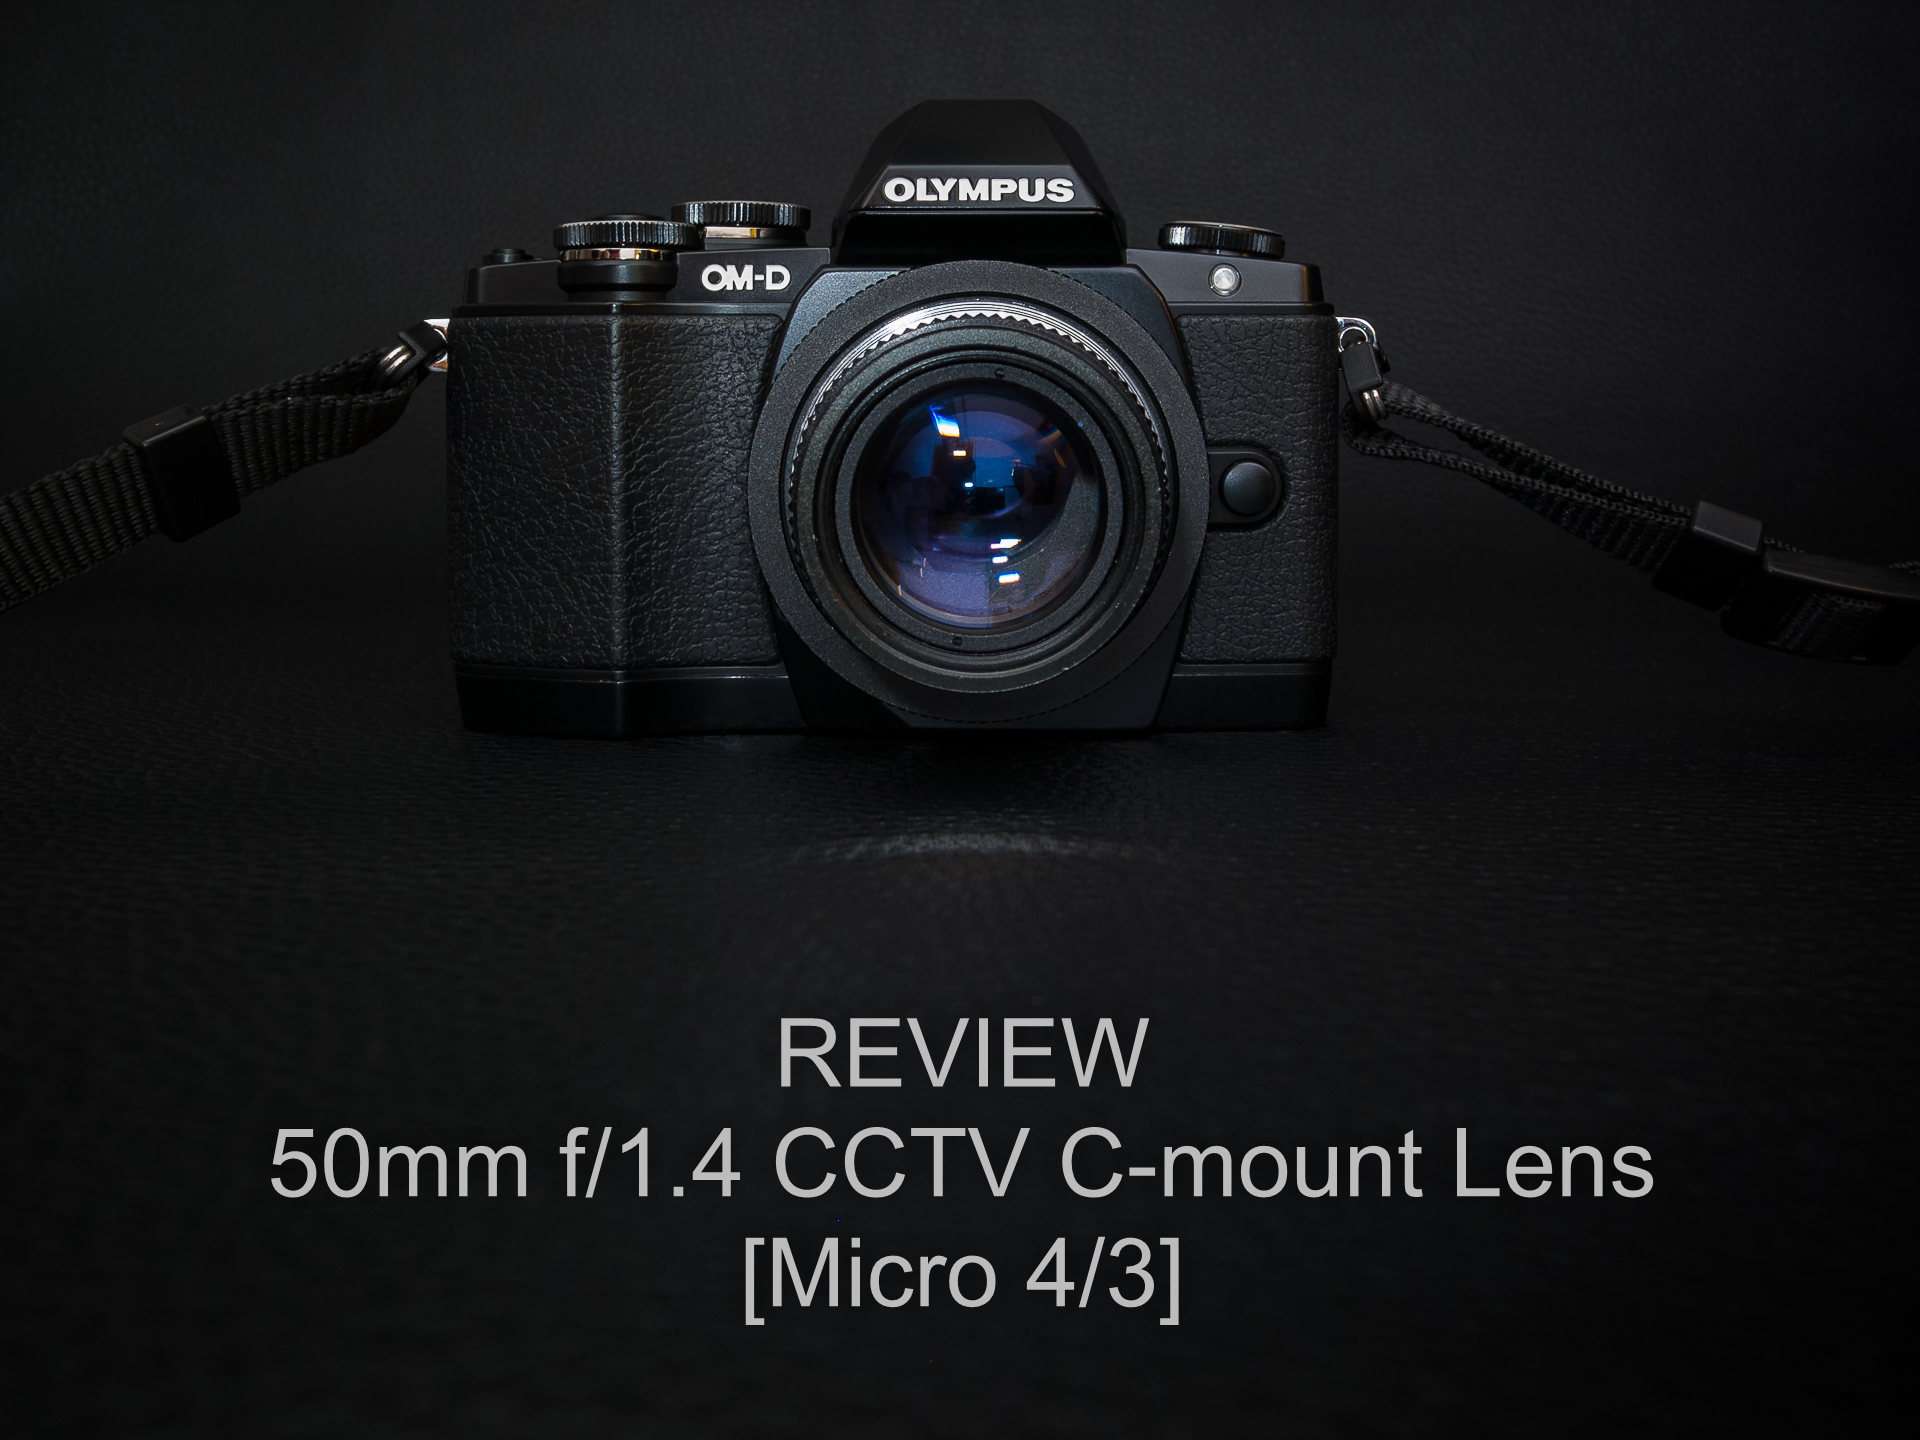 Micro Four Thirds Page 2 Big Street Guns Panasonic Leica Dg Summilux 25mm F 14 Asph 4 3 Lens Note I Have Already Reviewed The 50mm Cctv C Mount On My Nikon 1 V1 You Can Read That Review Here Because Of Vastly Improved Image Quality